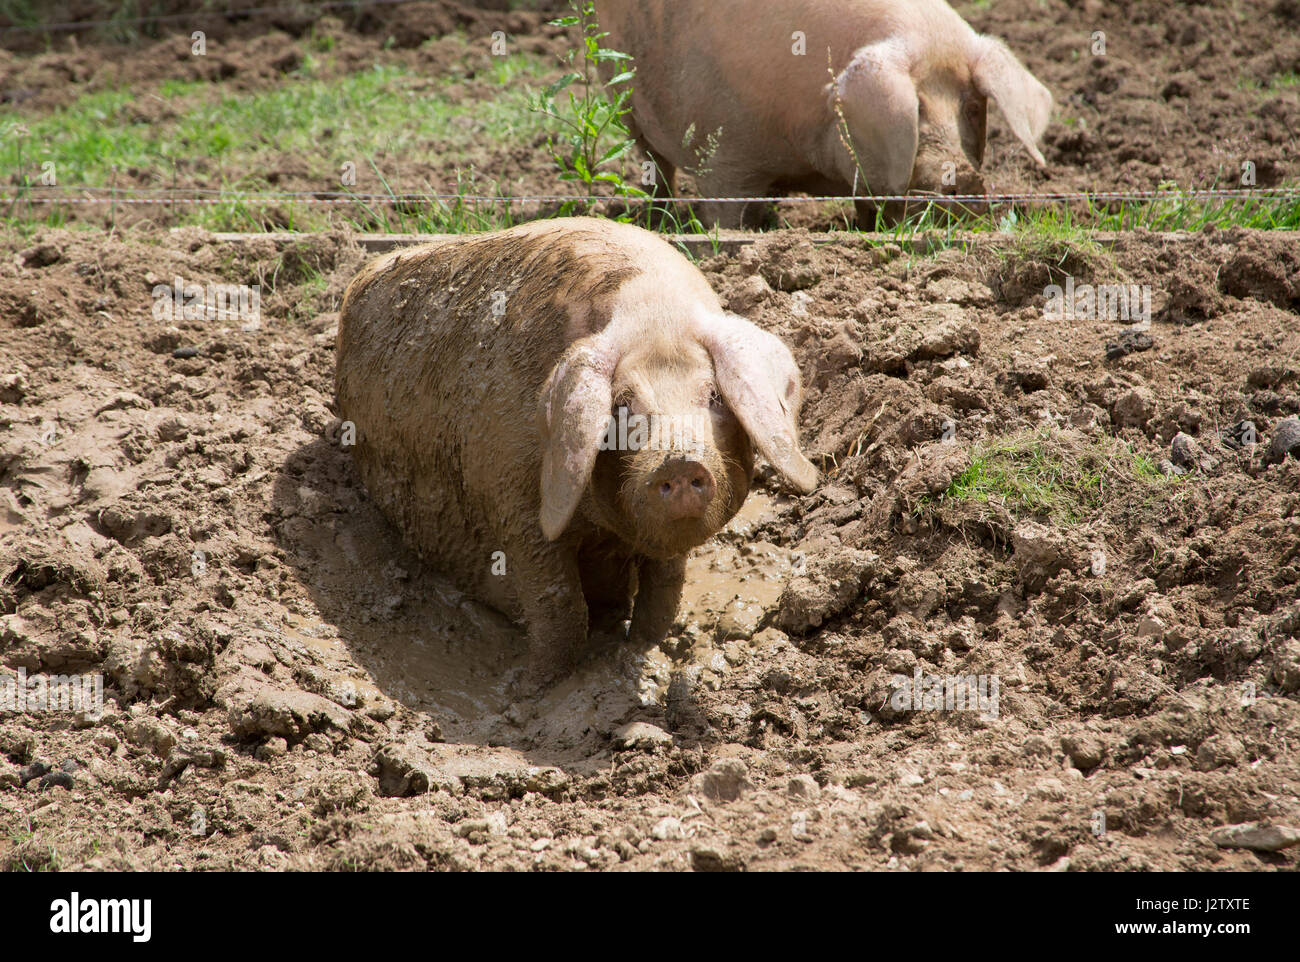 British Lop Pigs, adult females wallowing in mud, Cornwall, UK - Stock Image